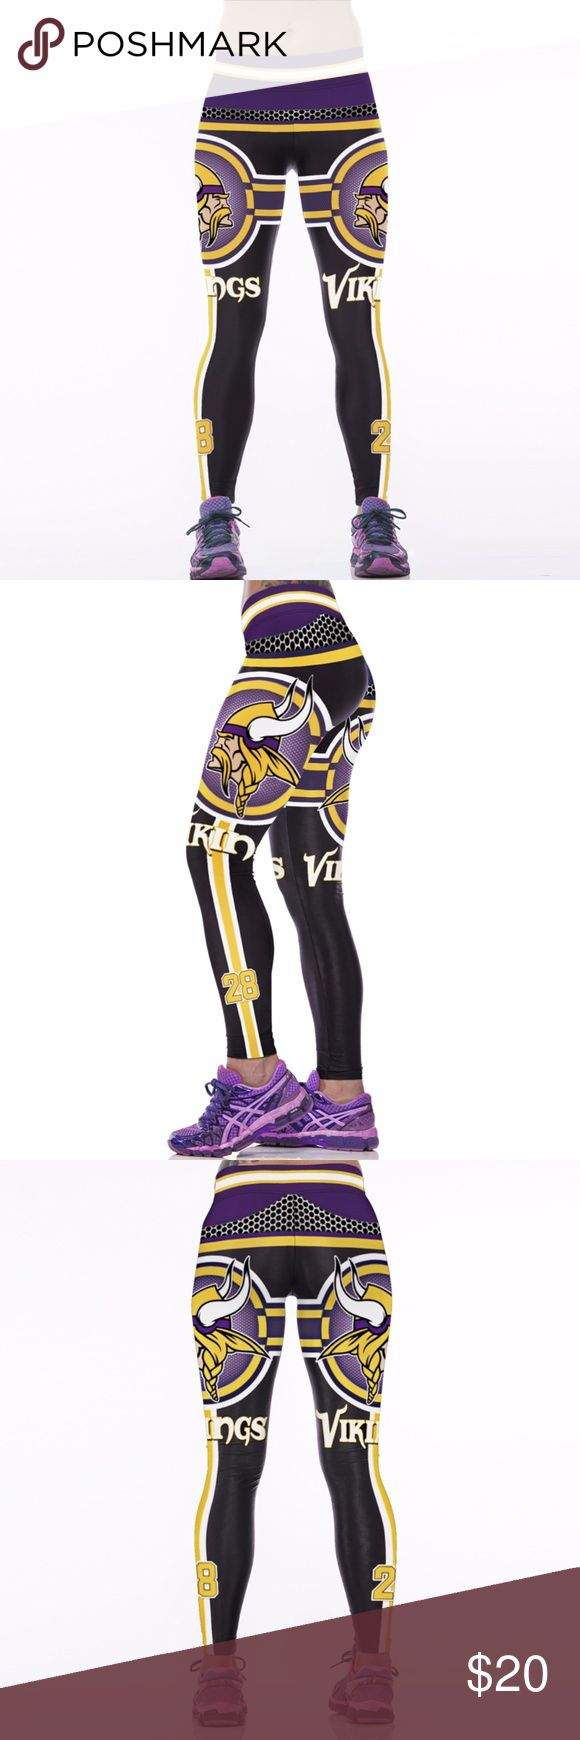 Minnesota Vikings Leggings Lightweight soft- quick dry breathable fabric Suitable for any kind of workout, gym, yoga, Zumba, cycling, etc. or casual wear High-quality construction with 6-thread double lock stitch seams Four-way Stretch Material: 82% Polyester, 18% Spandex Pants Leggings